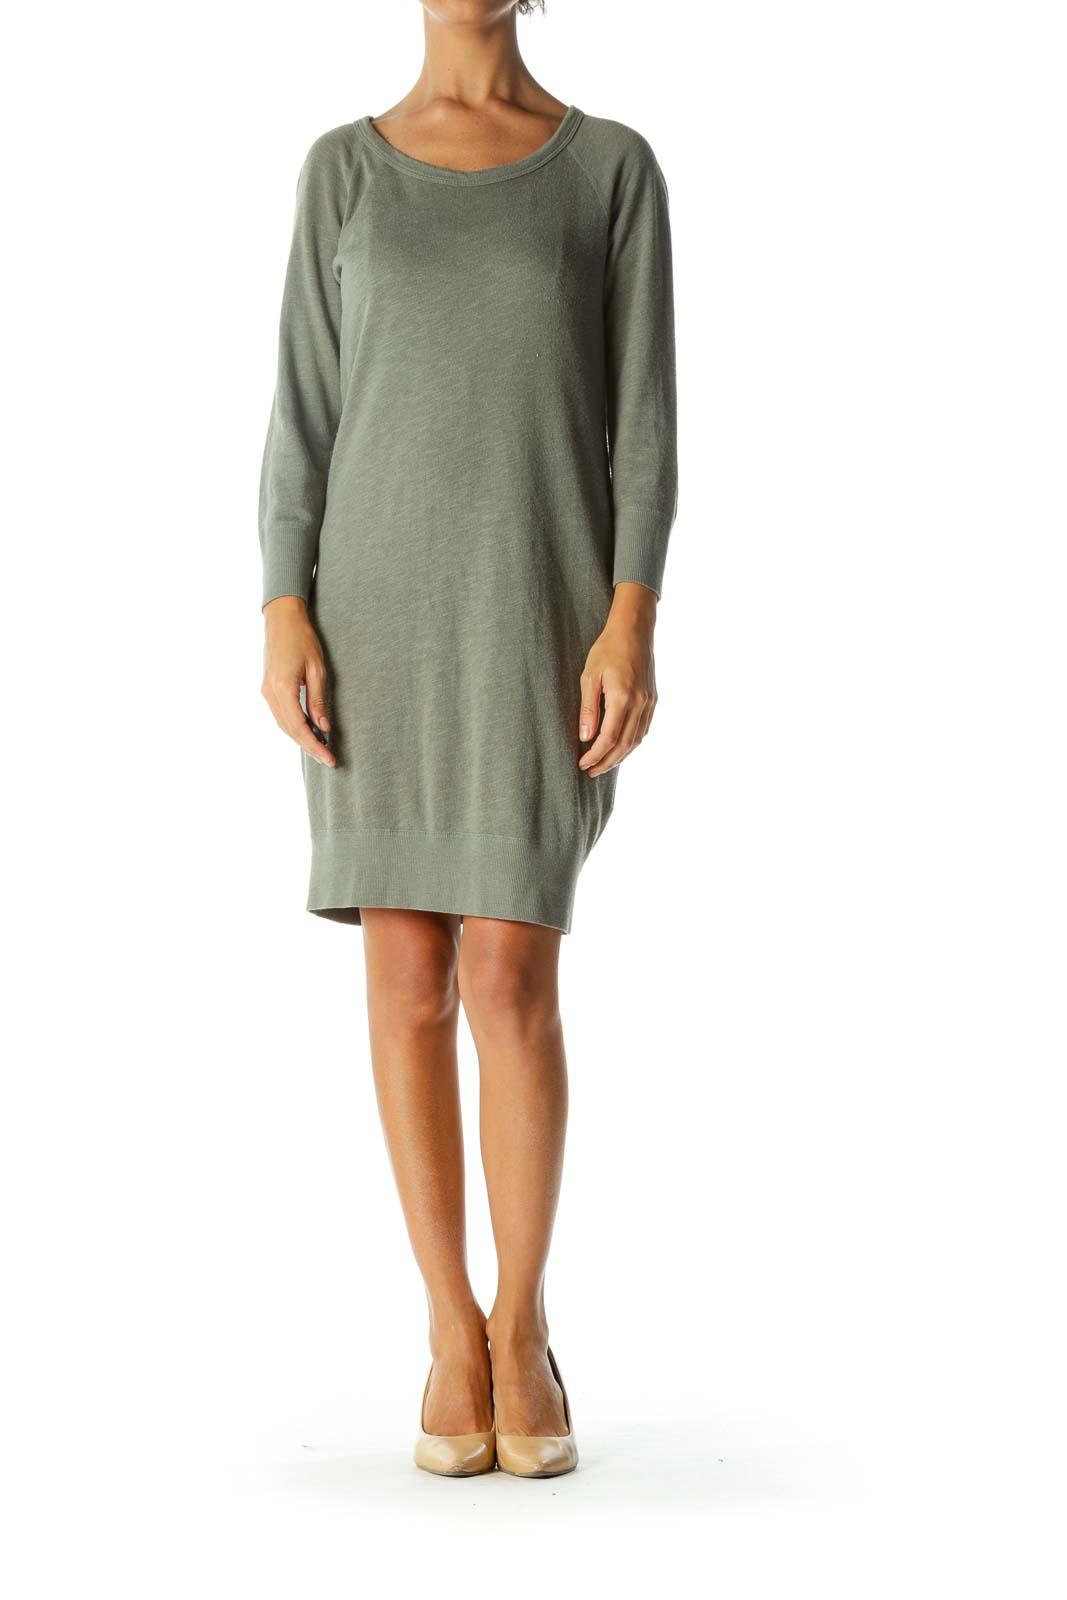 Green Round Neck Long Sleeve Sweat Dress